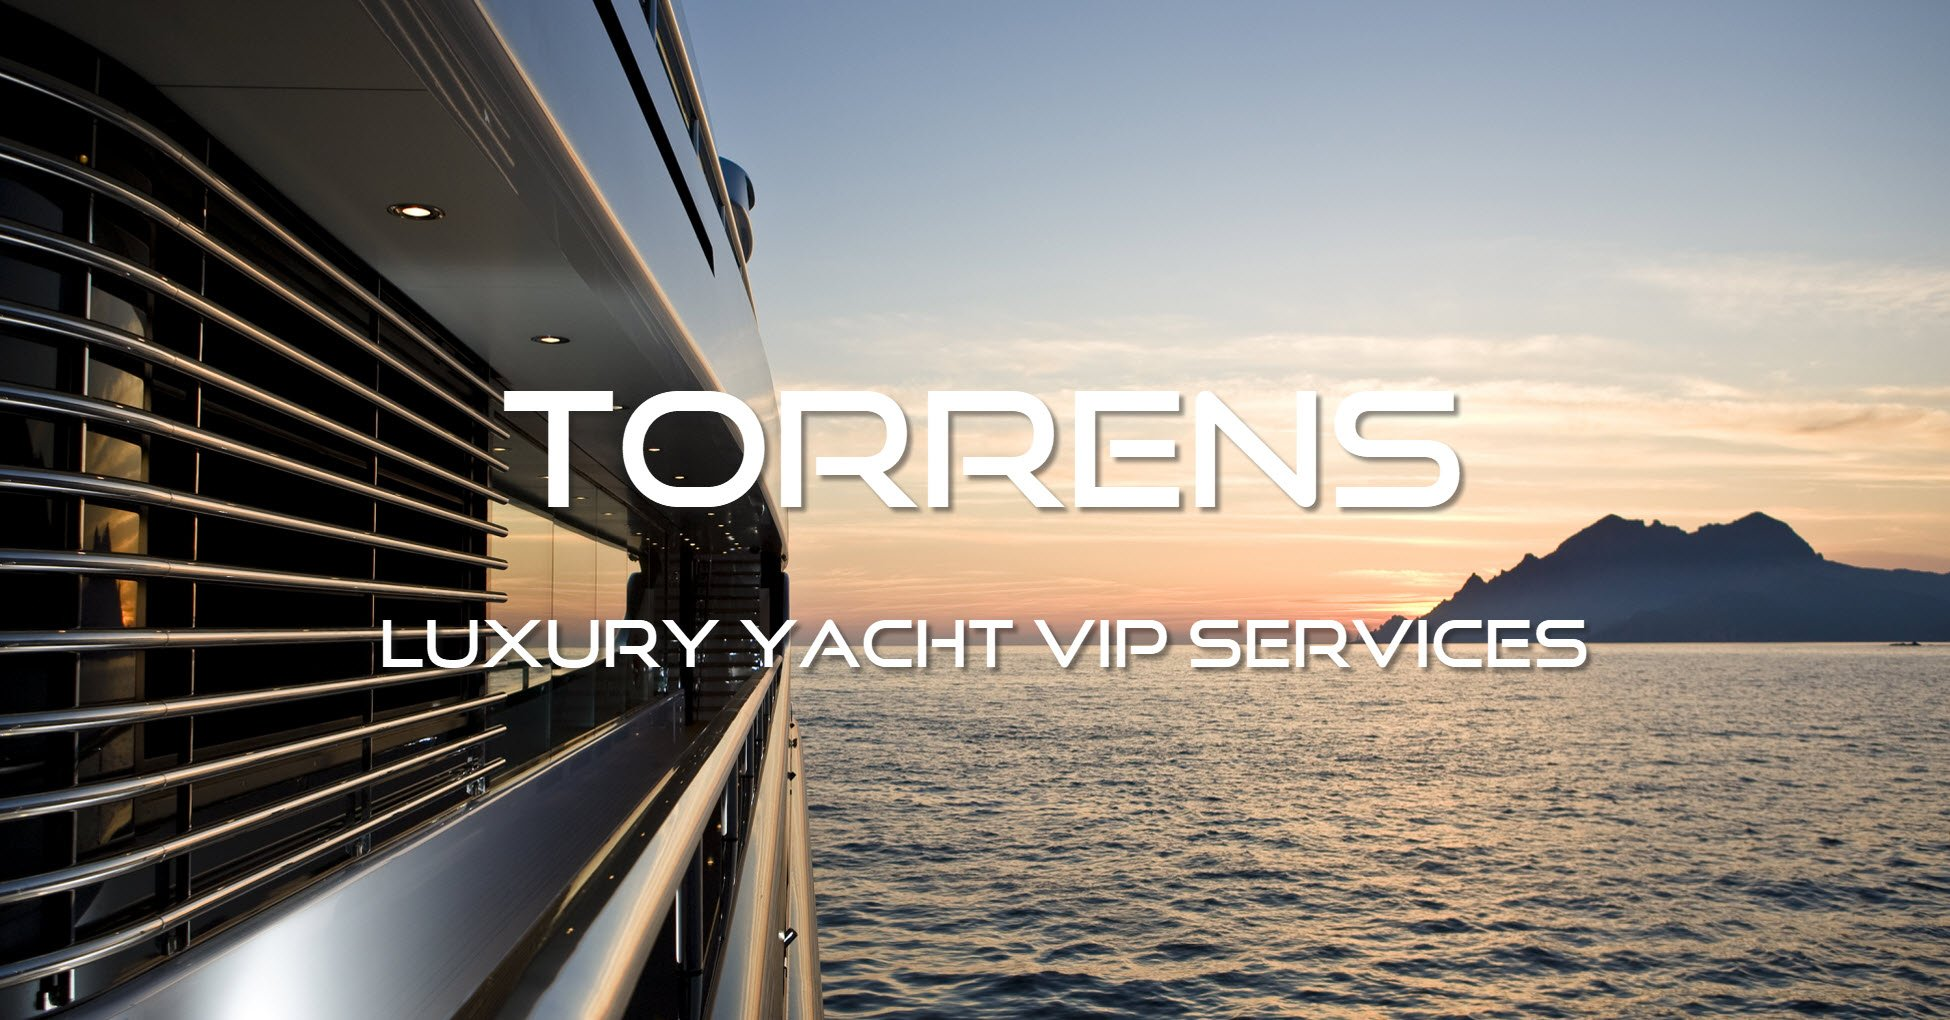 Torrens Luxury Collection Yacht VIP Services